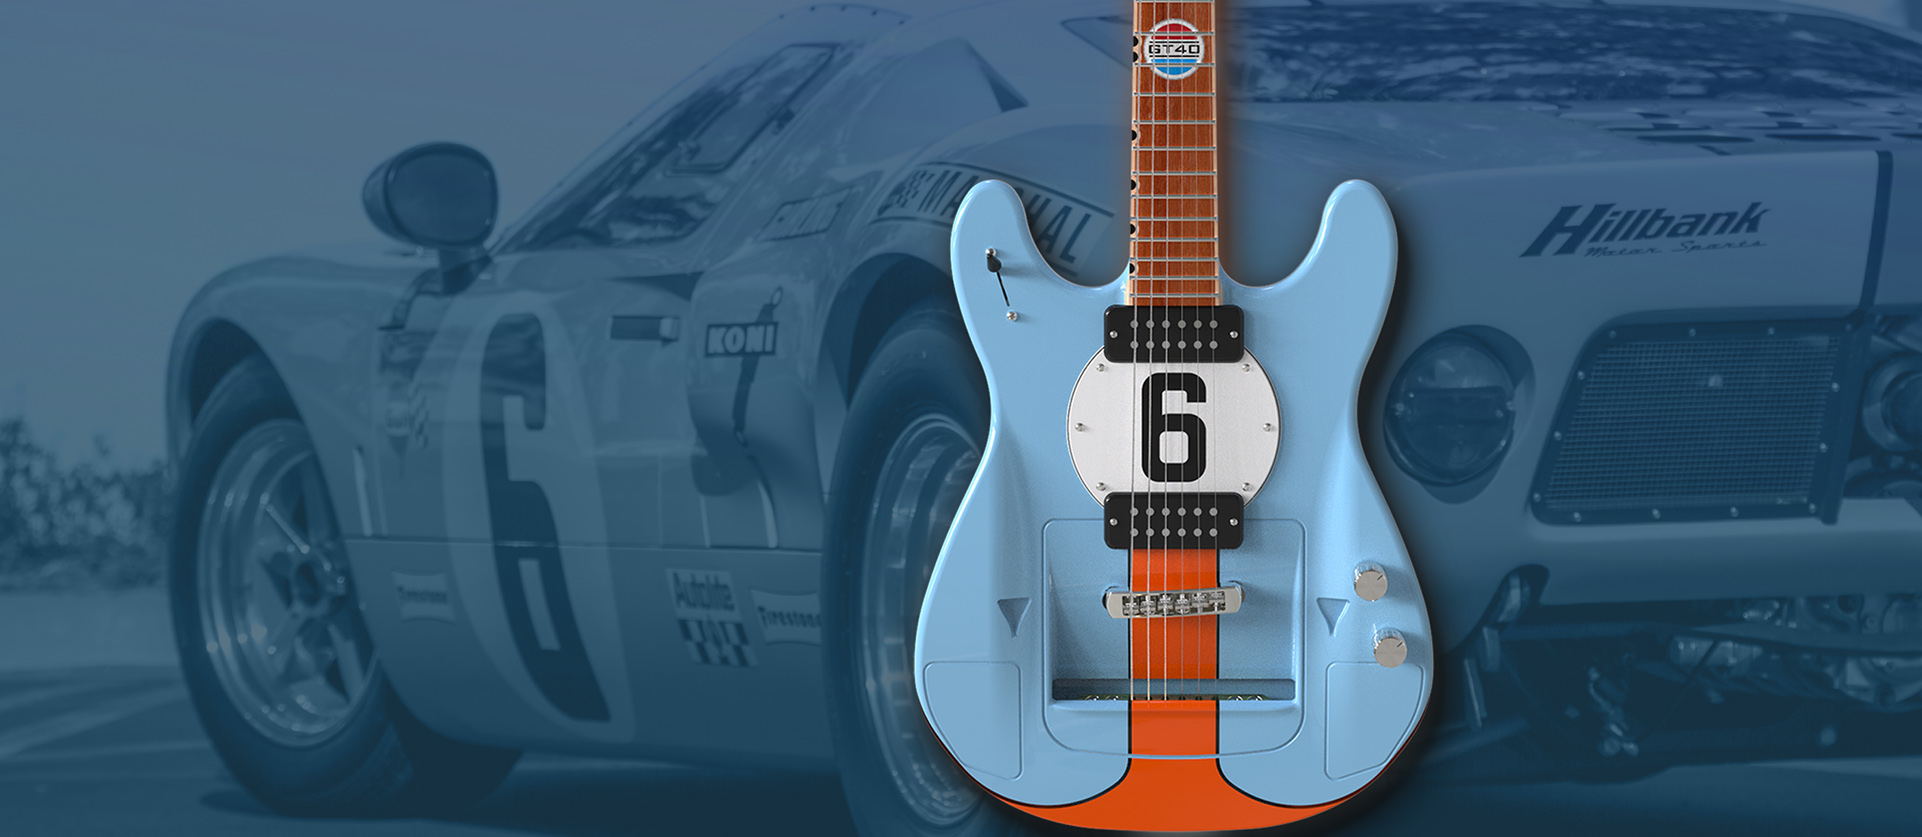 GT40 Guitars for sale